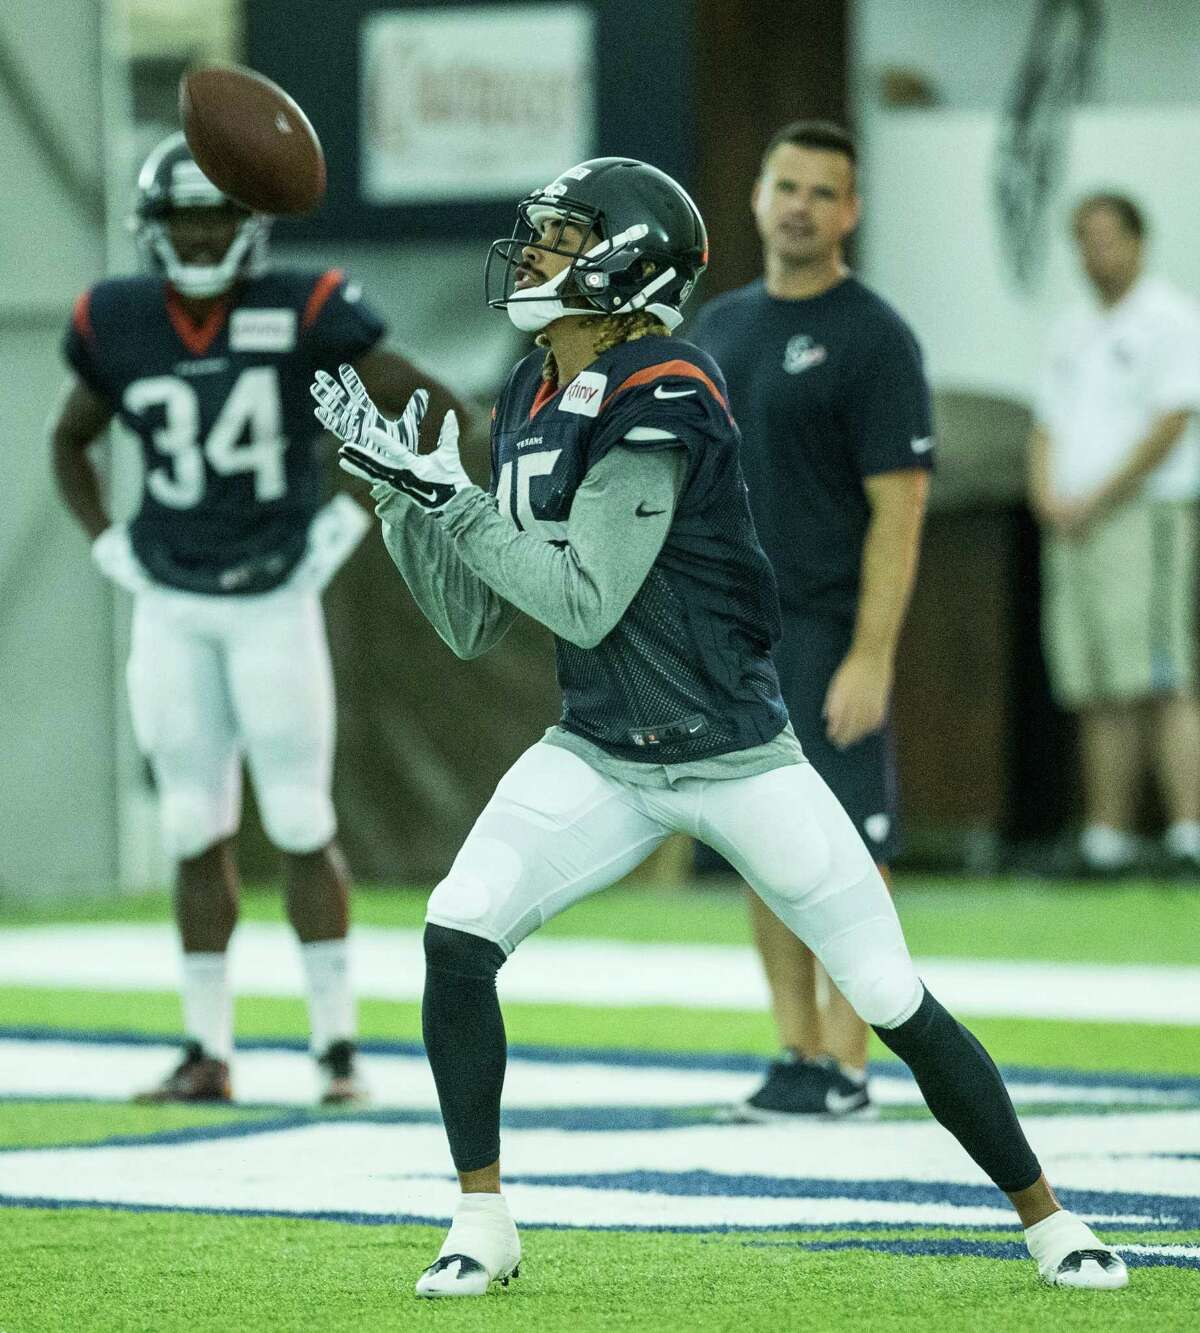 Houston Texans wide receiver Will Fuller receives a kick during Texans training camp at Houston Methodist Training Center on Monday, Aug. 8, 2016, in Houston.